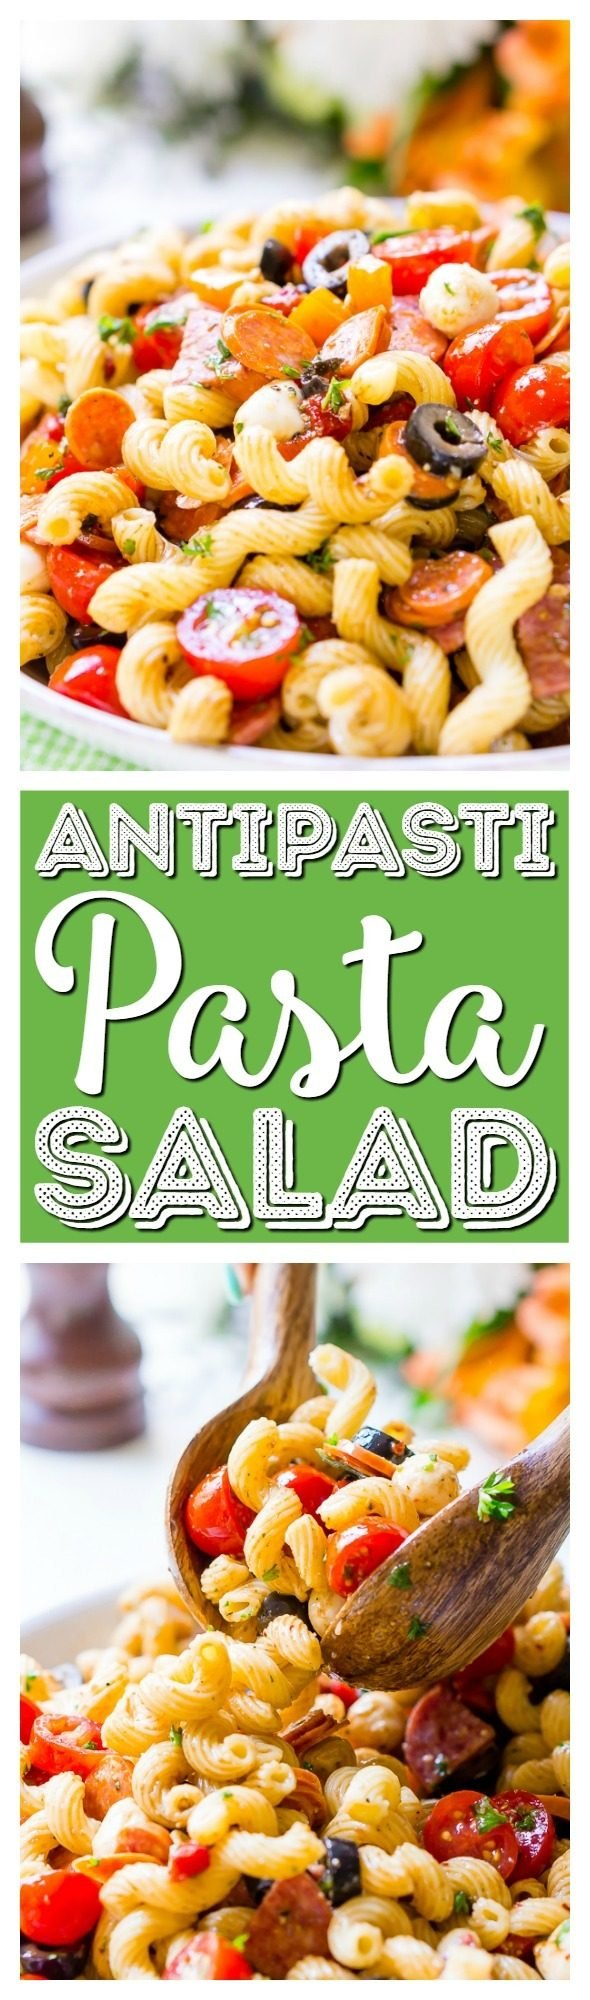 Antipasti Pasta Saladrecipe is loaded with veggies, cheeses, herbs, and meats and coated in a simple balsamic and olive oil dressing. Perfect for large get-togetherslike BBQs and potlucks!